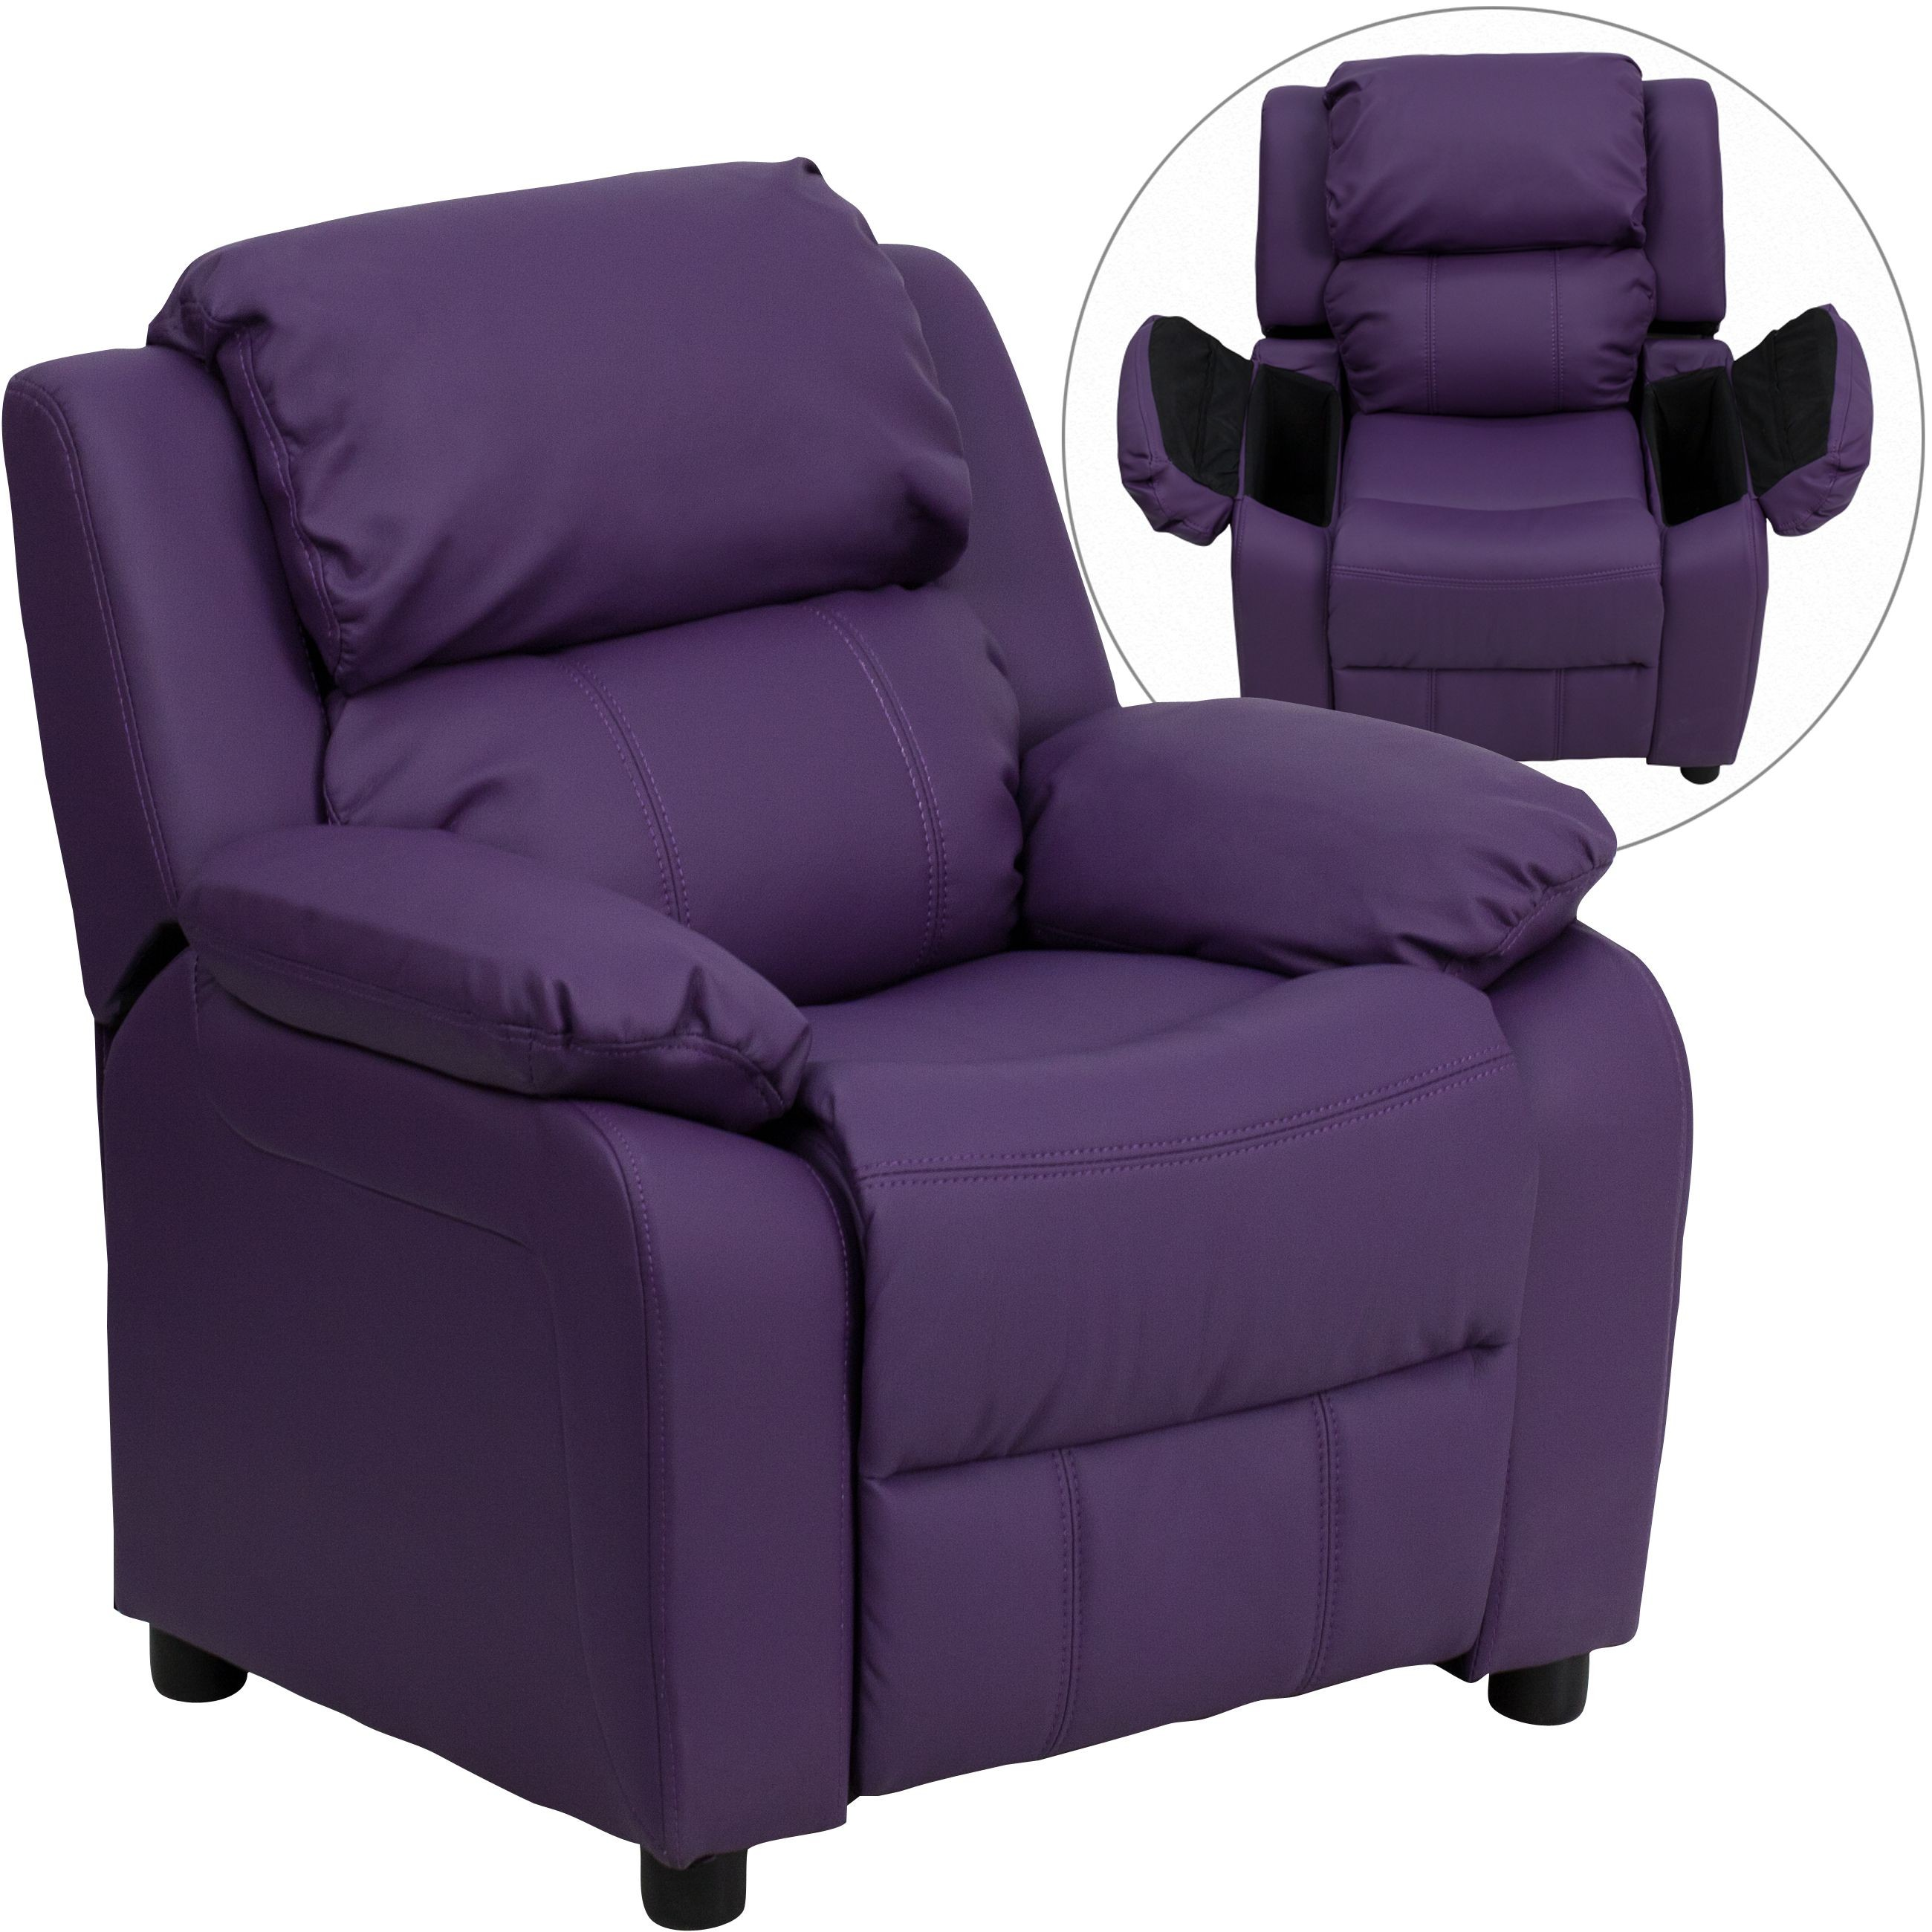 Flash Furniture BT 7985 KID PUR GG Deluxe Heavily Padded Contemporary Purple